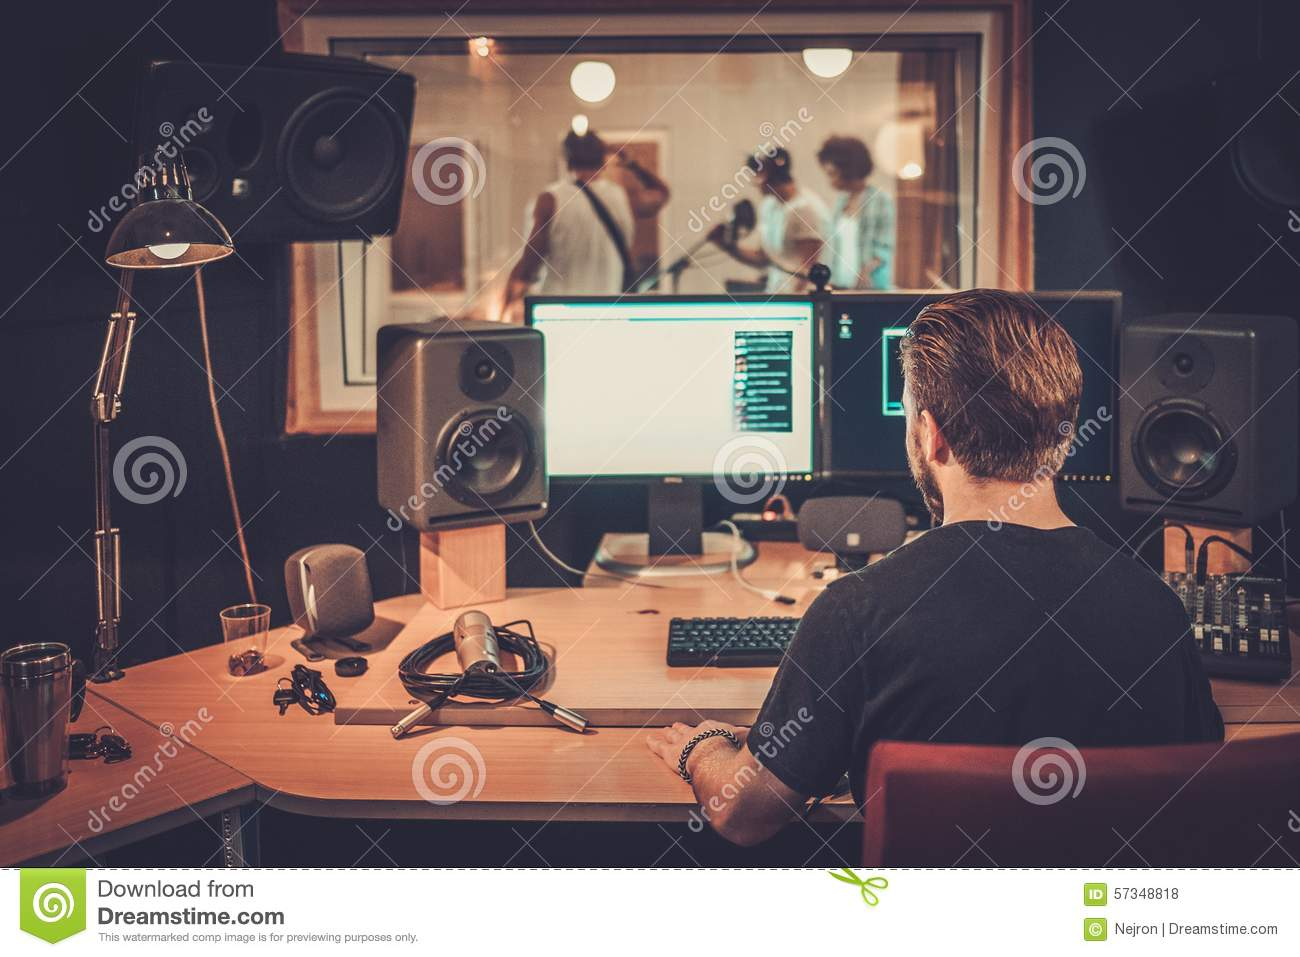 Music band in a cd recording studio